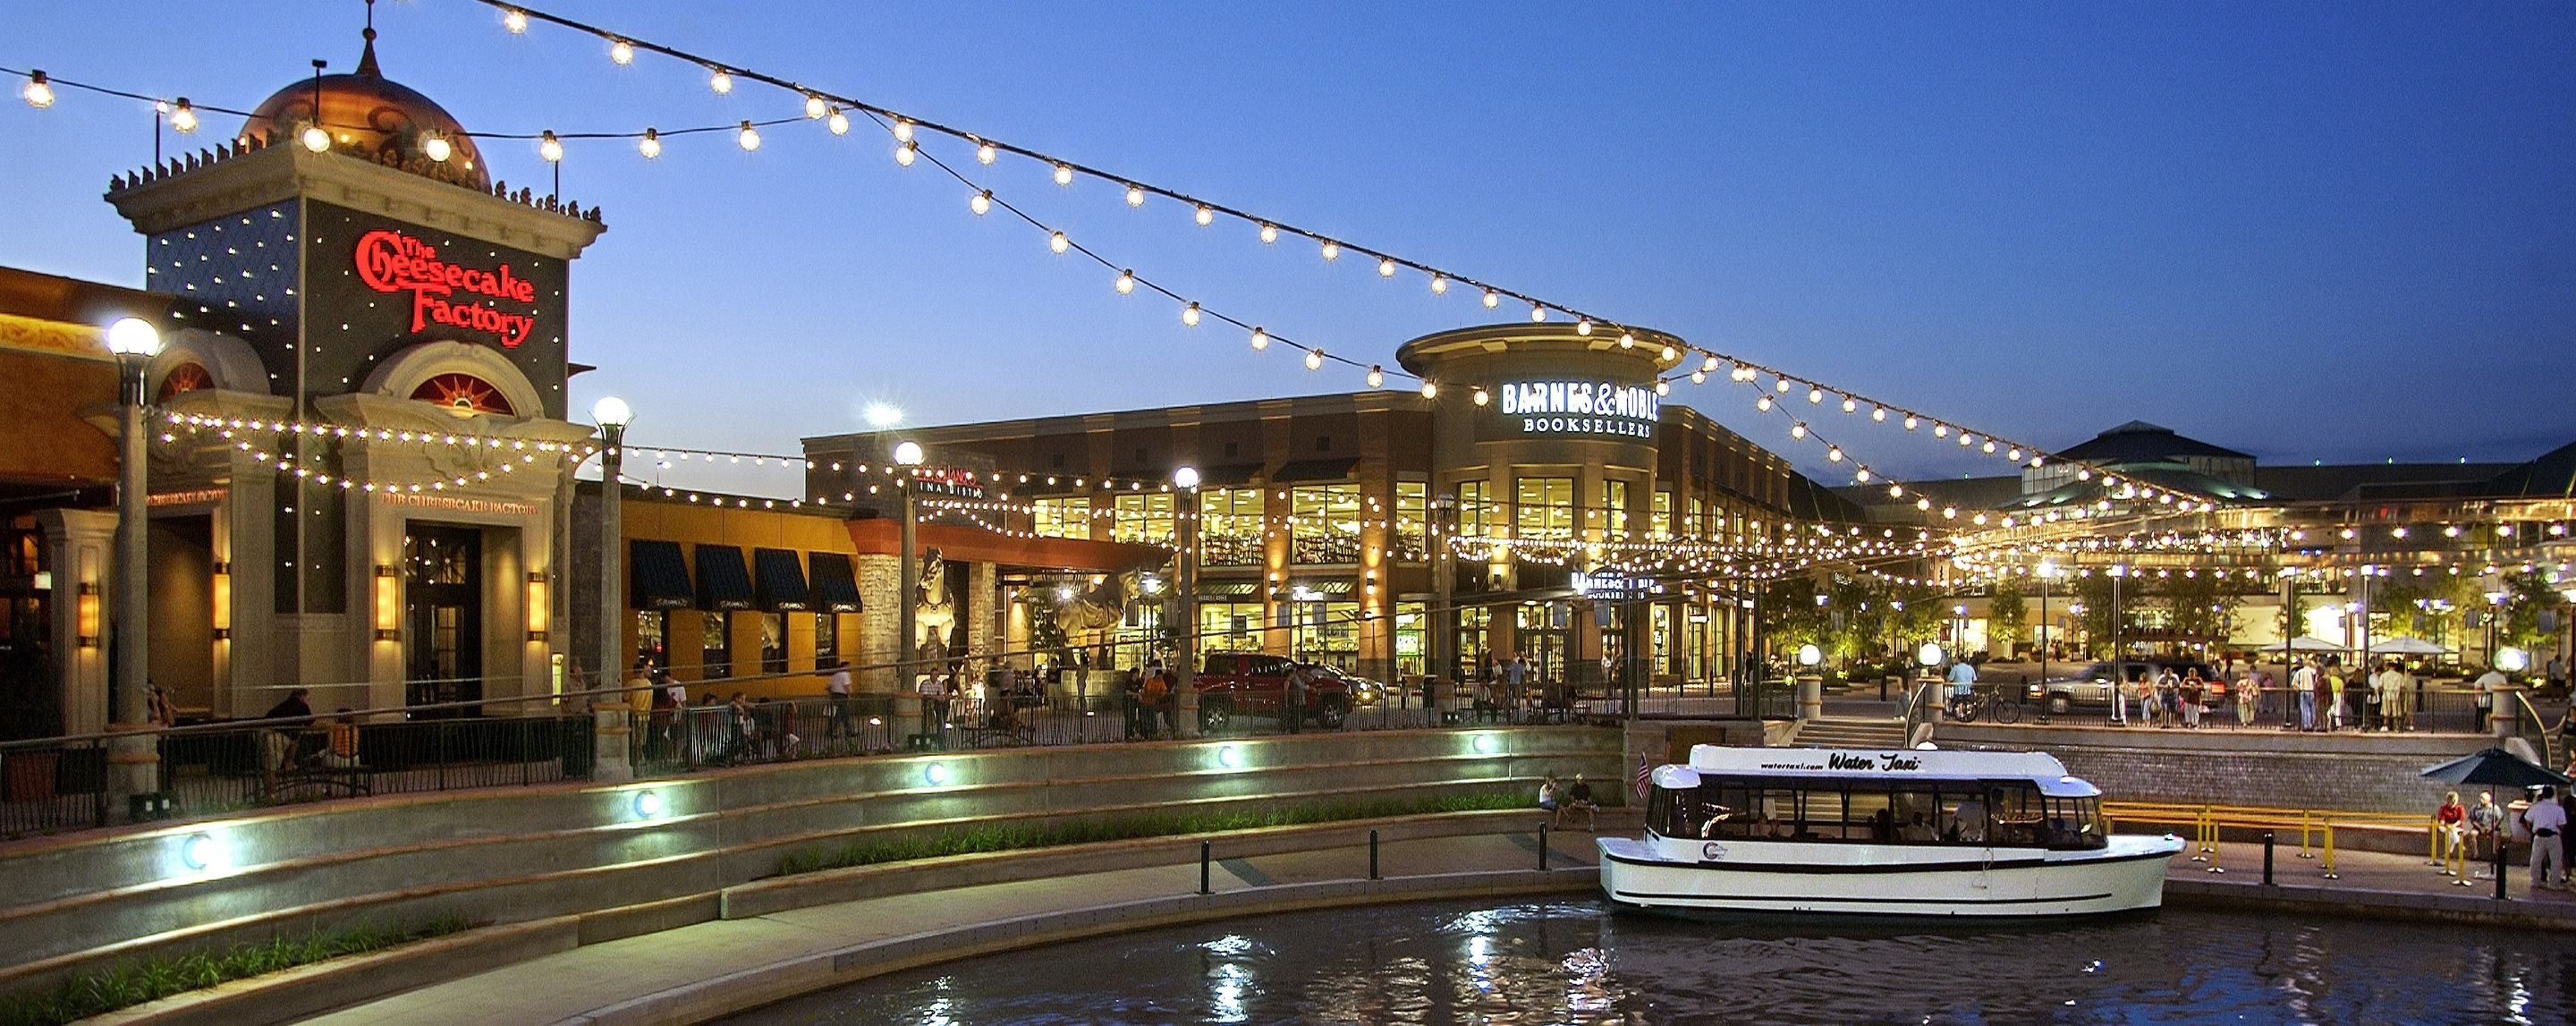 The Woodlands Mall image 0